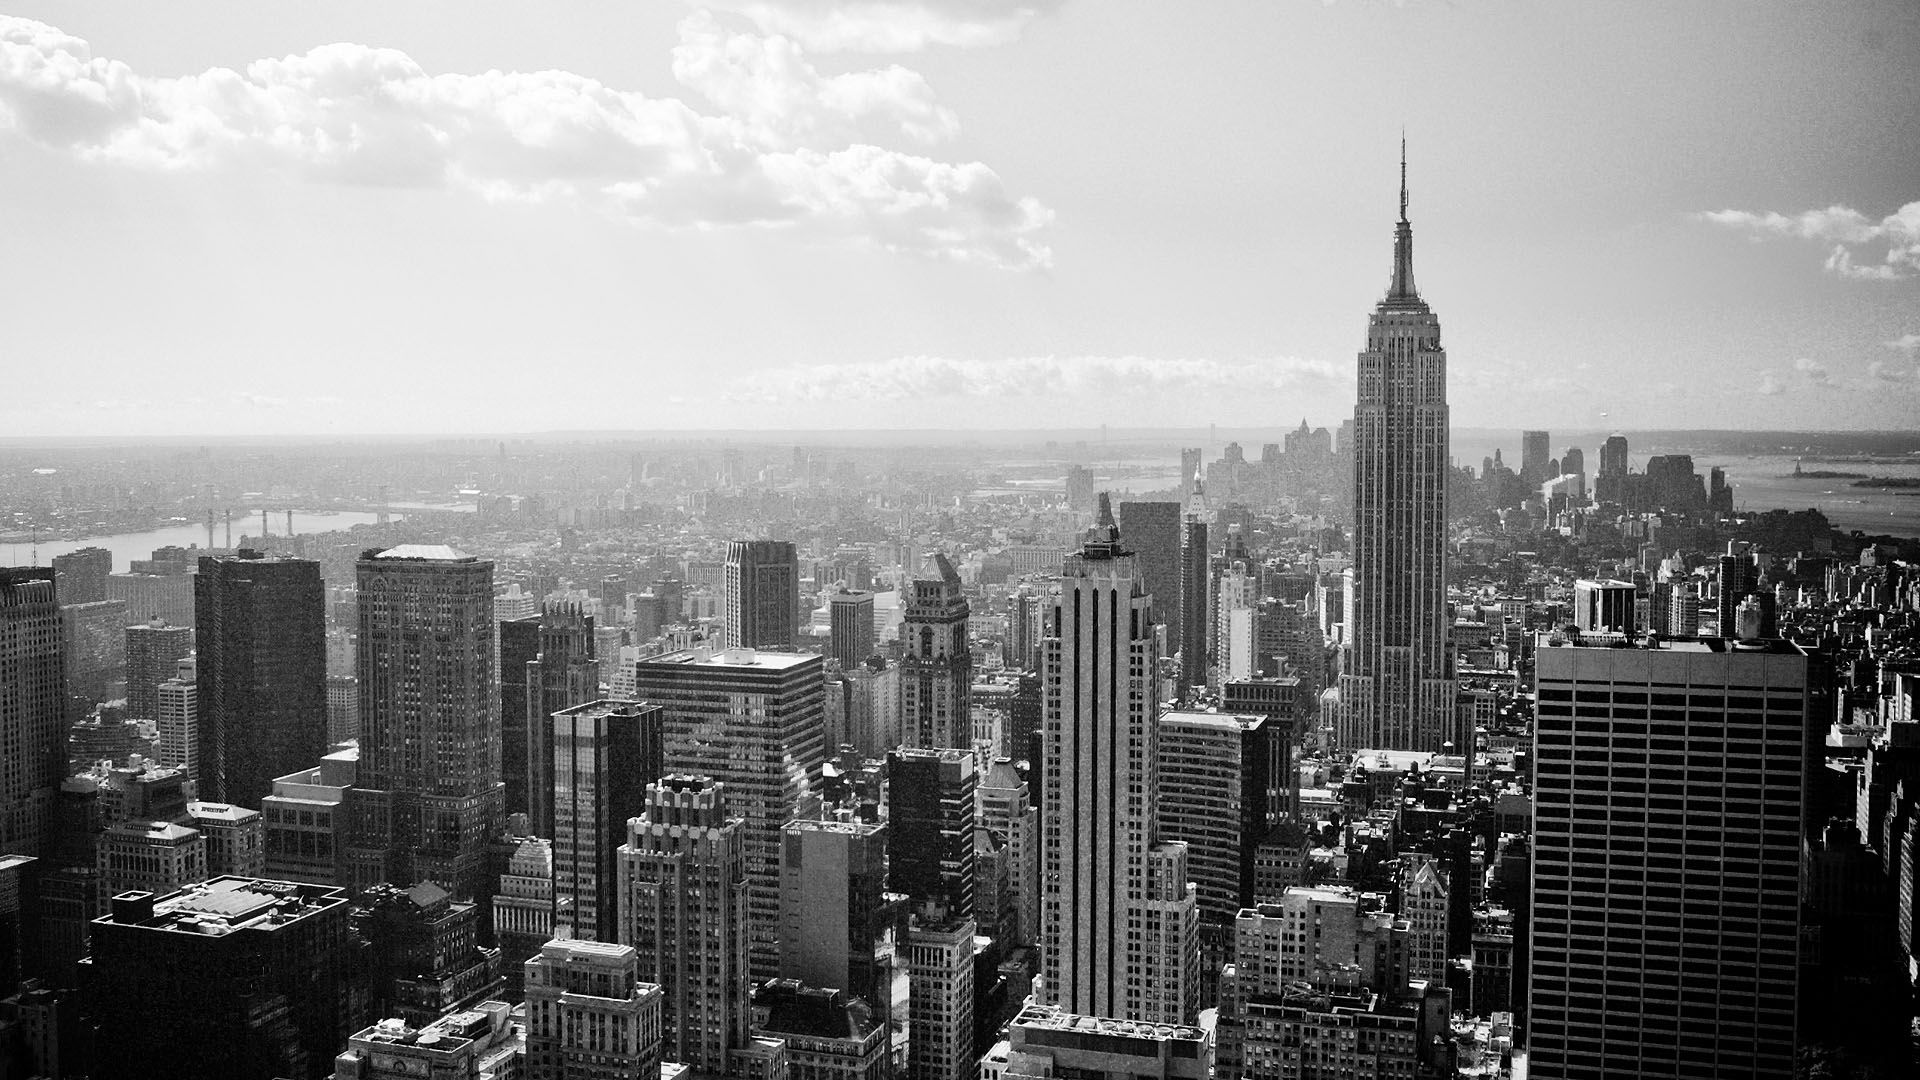 New York Skyline Full Hd Wallpaper 1080p Fondo De Pantalla